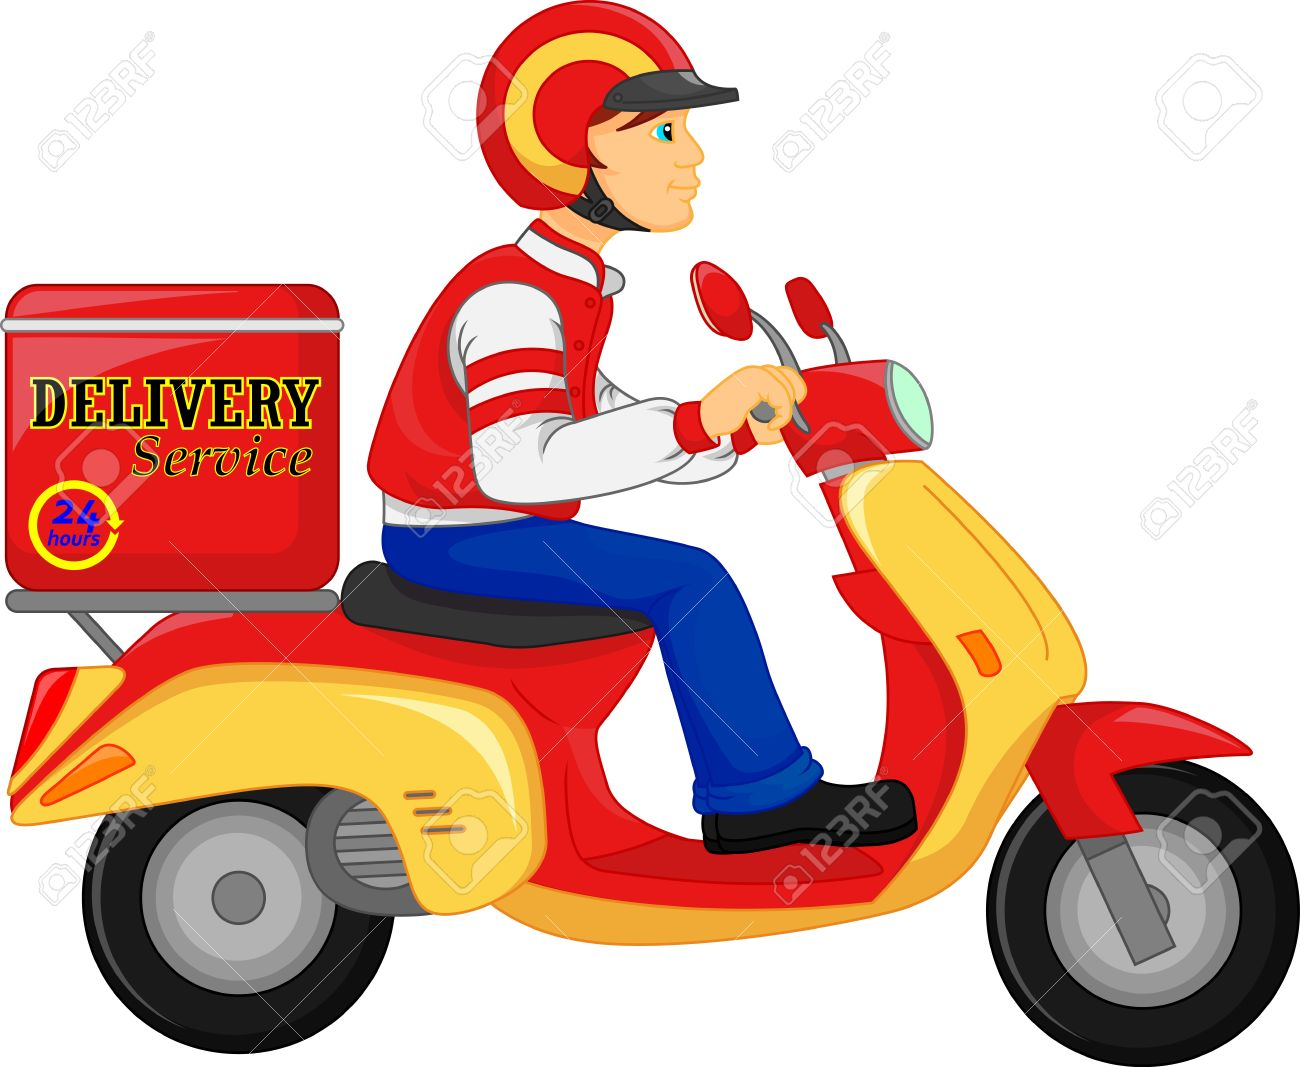 free motorcycle shipping  Delivery Boy Ride Scooter Motorcycle Service, Order, Worldwide ...